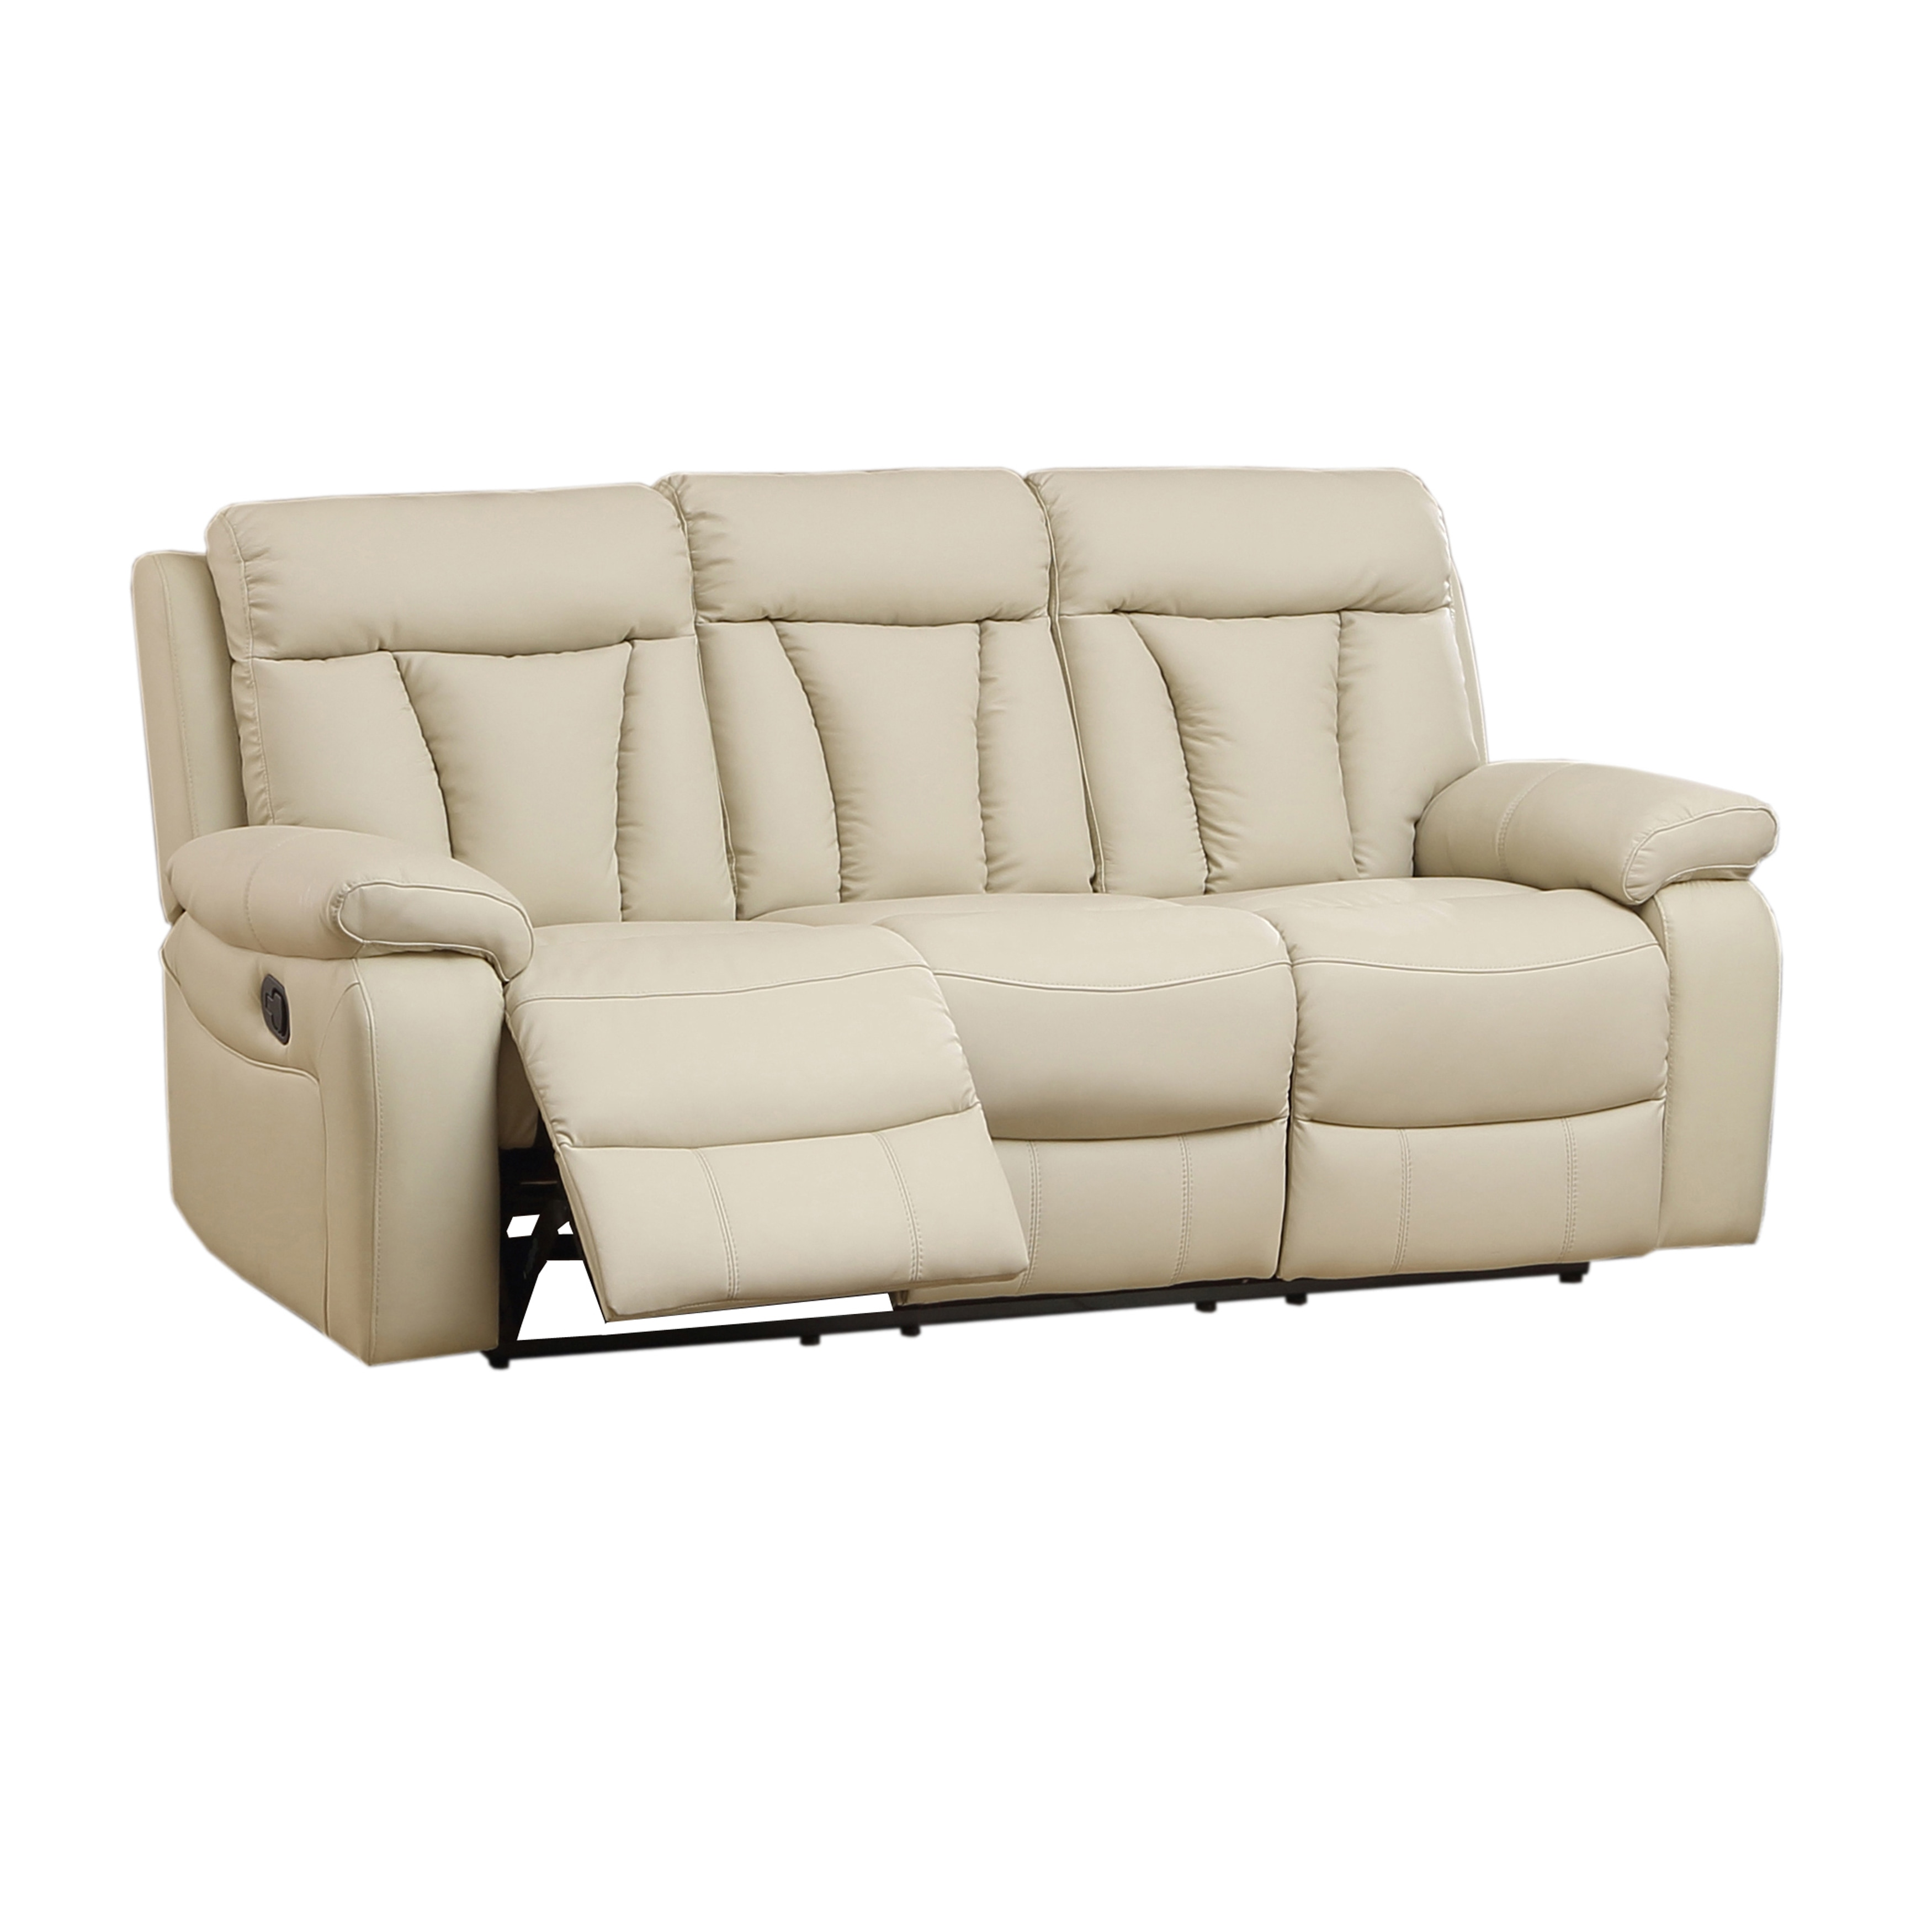 Skylar Beige Top Grain Leather Reclining Sofa Loveseat And Recliner Chair